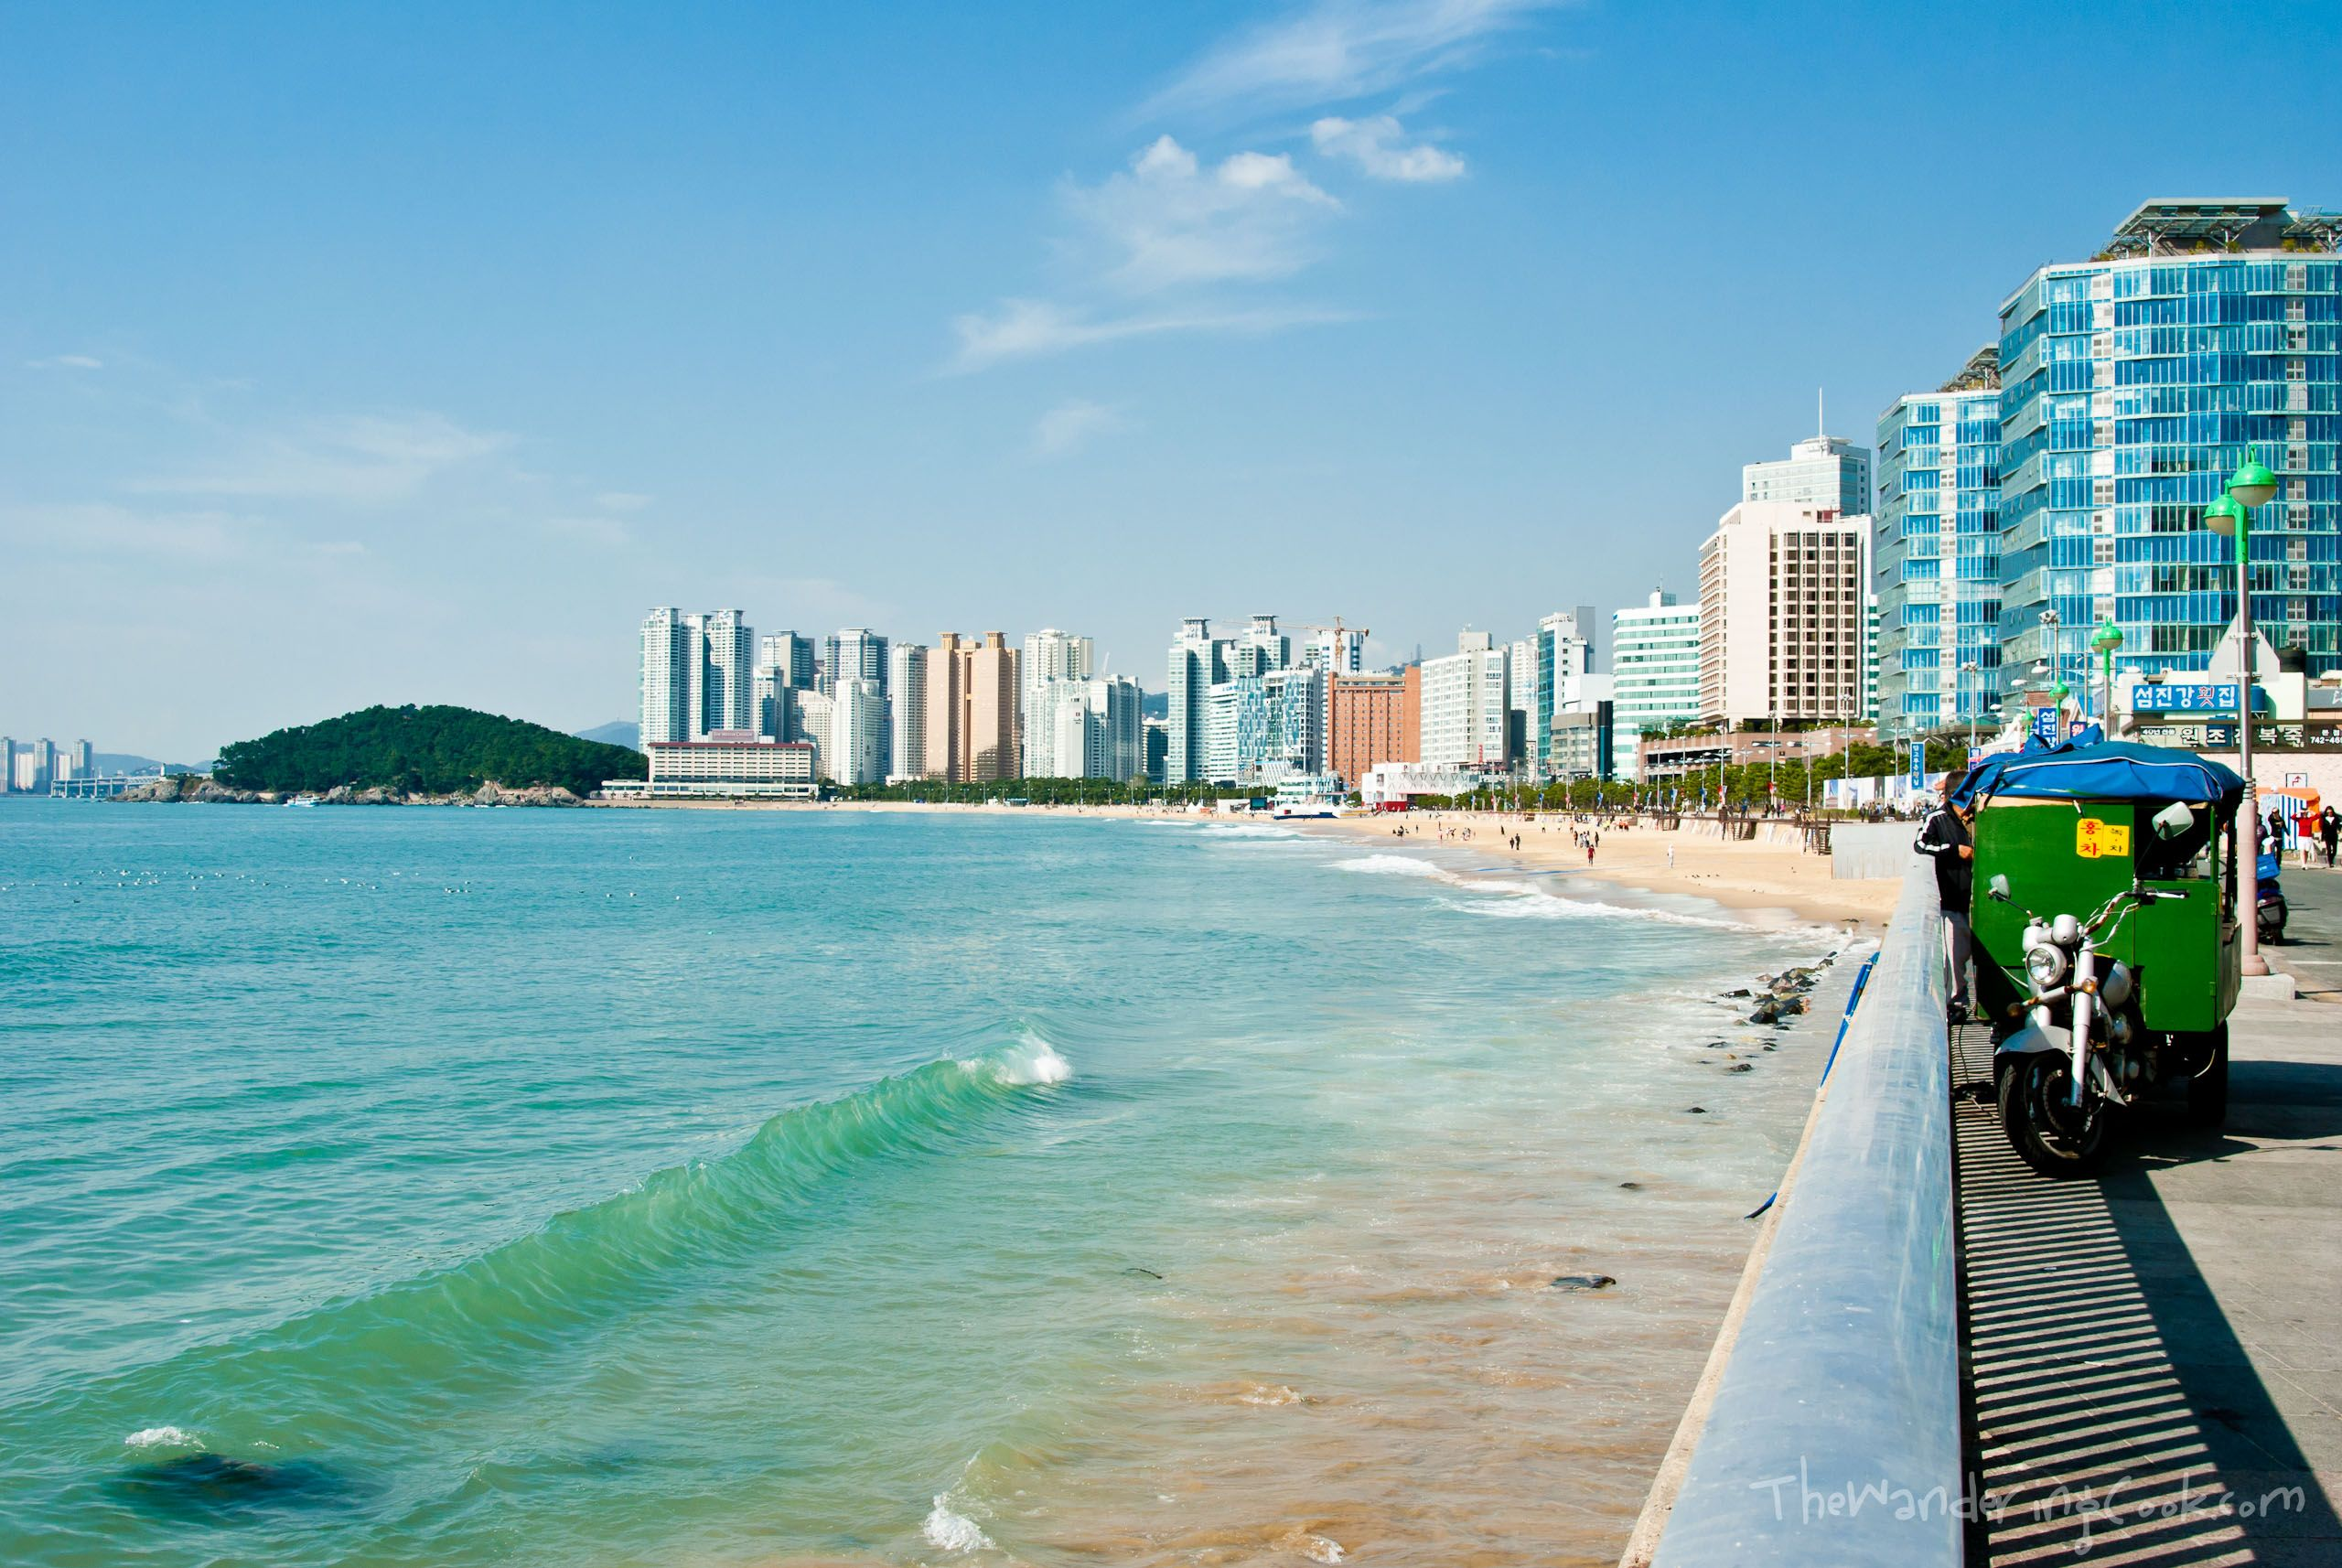 2560x1714 Busan Wallpapers, Busan Backgrounds Pack V.25ZL, T4.Themes Gallery